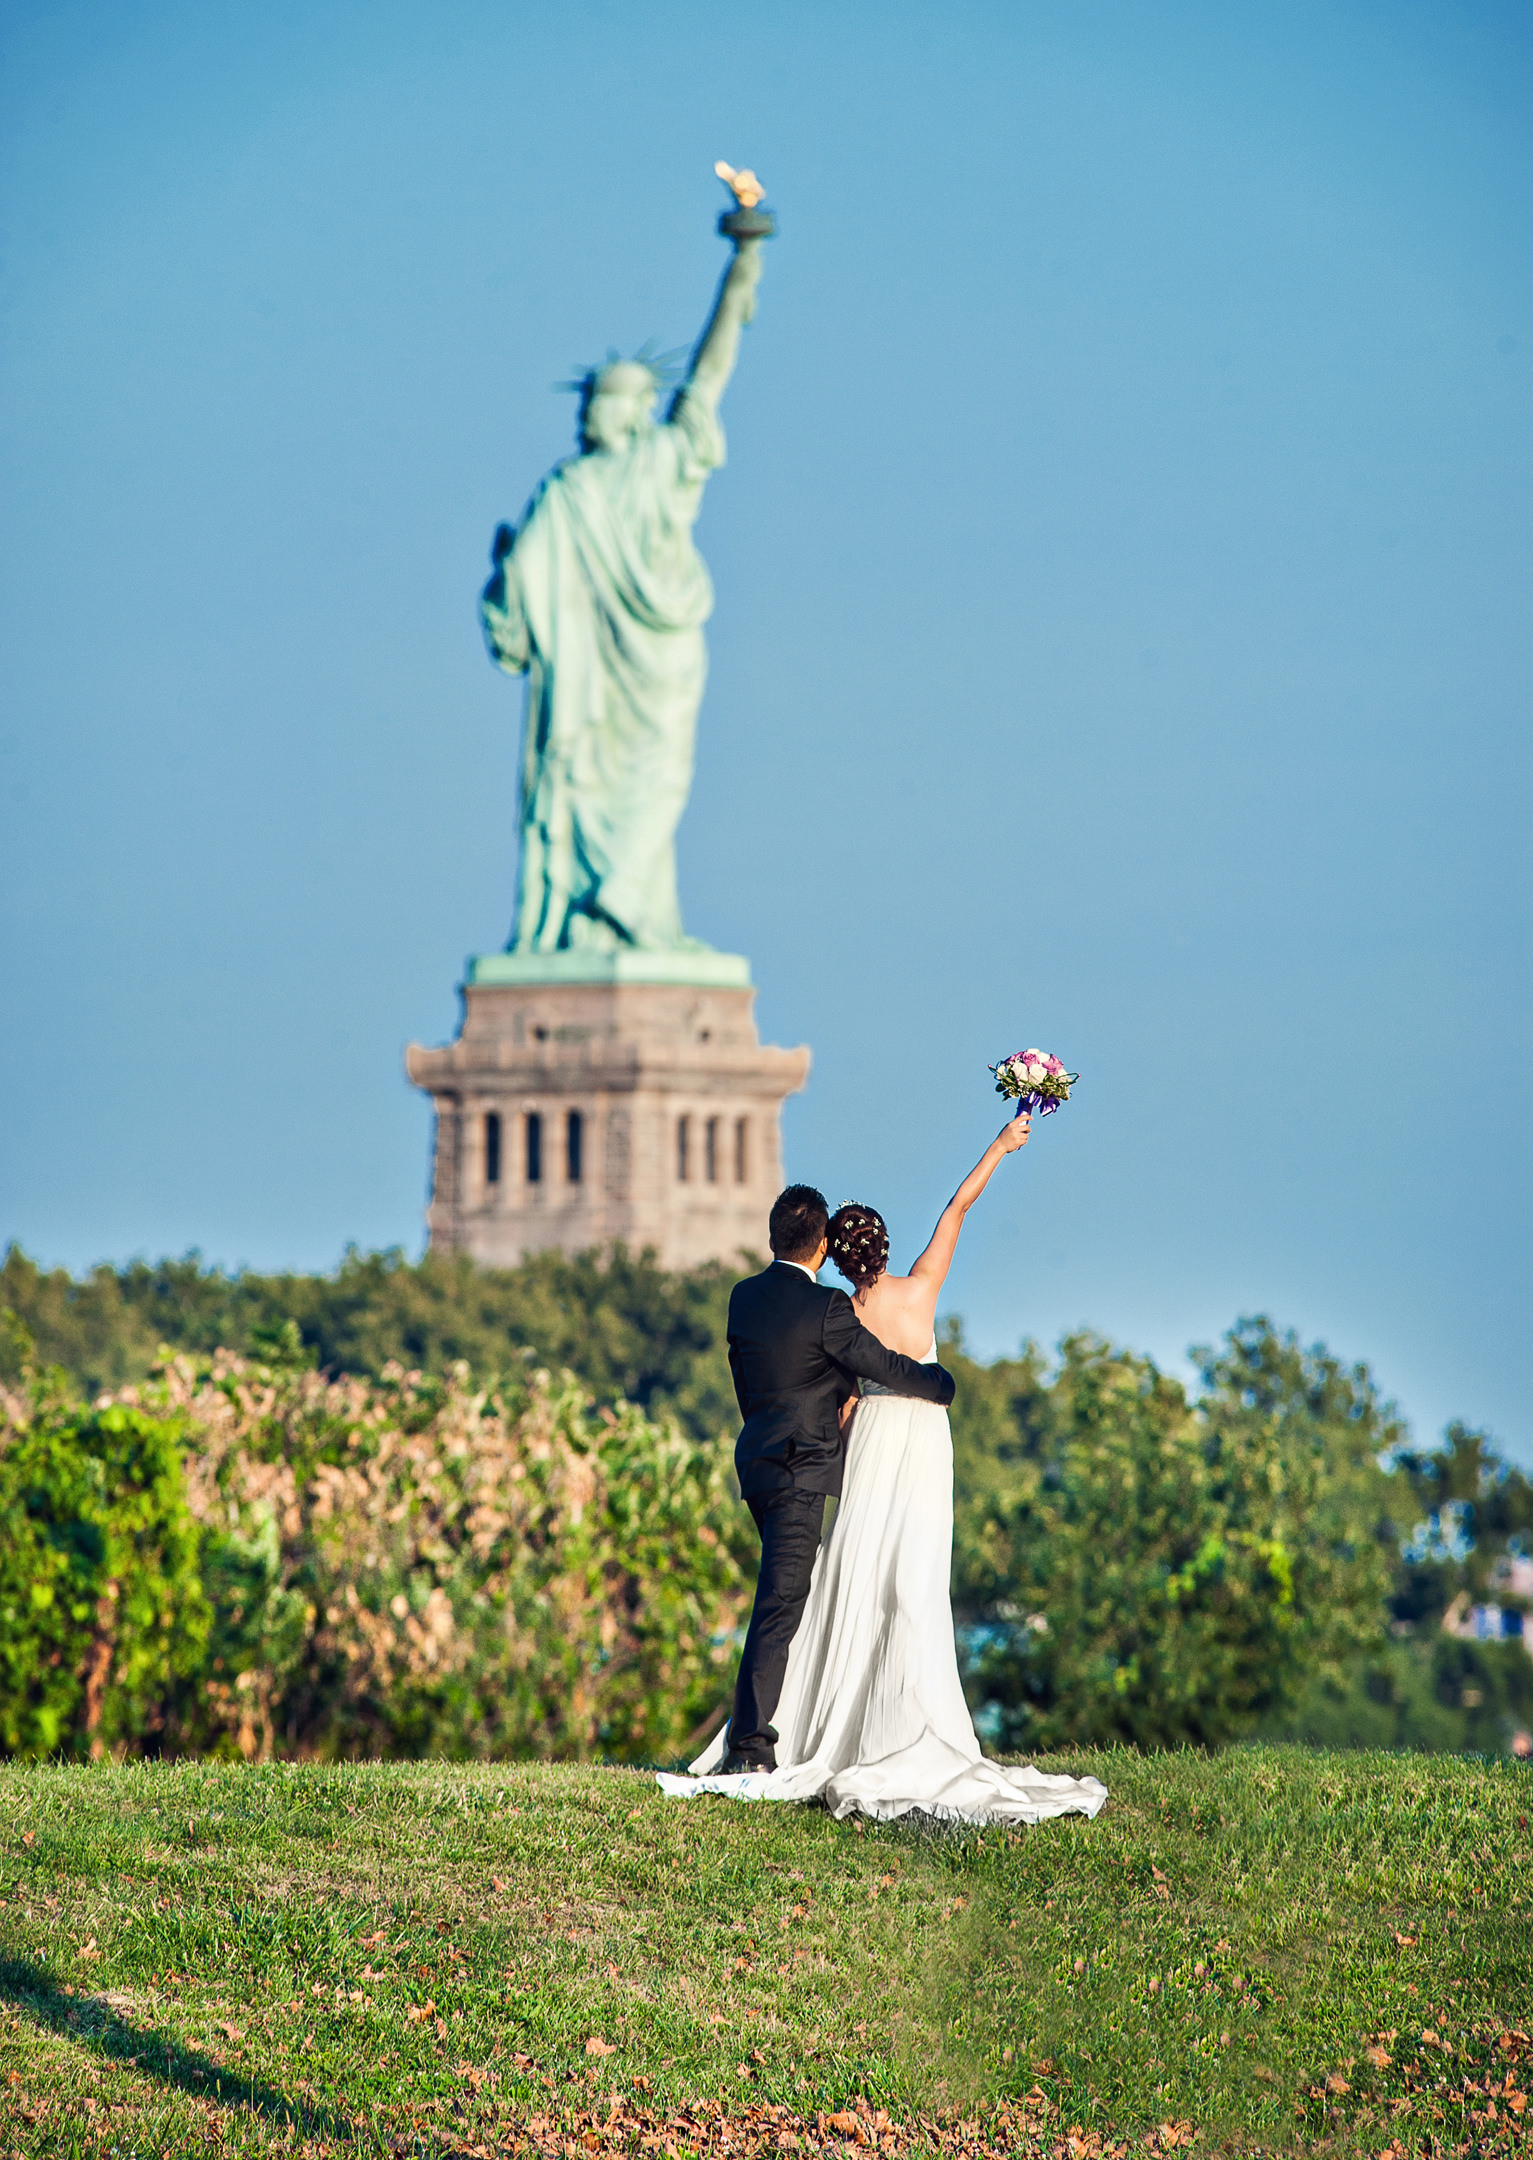 Chris_Hui_婚禮_婚紗照_pre_wedding_photography_best_004_statue_of_liberty_自由女神像.jpg